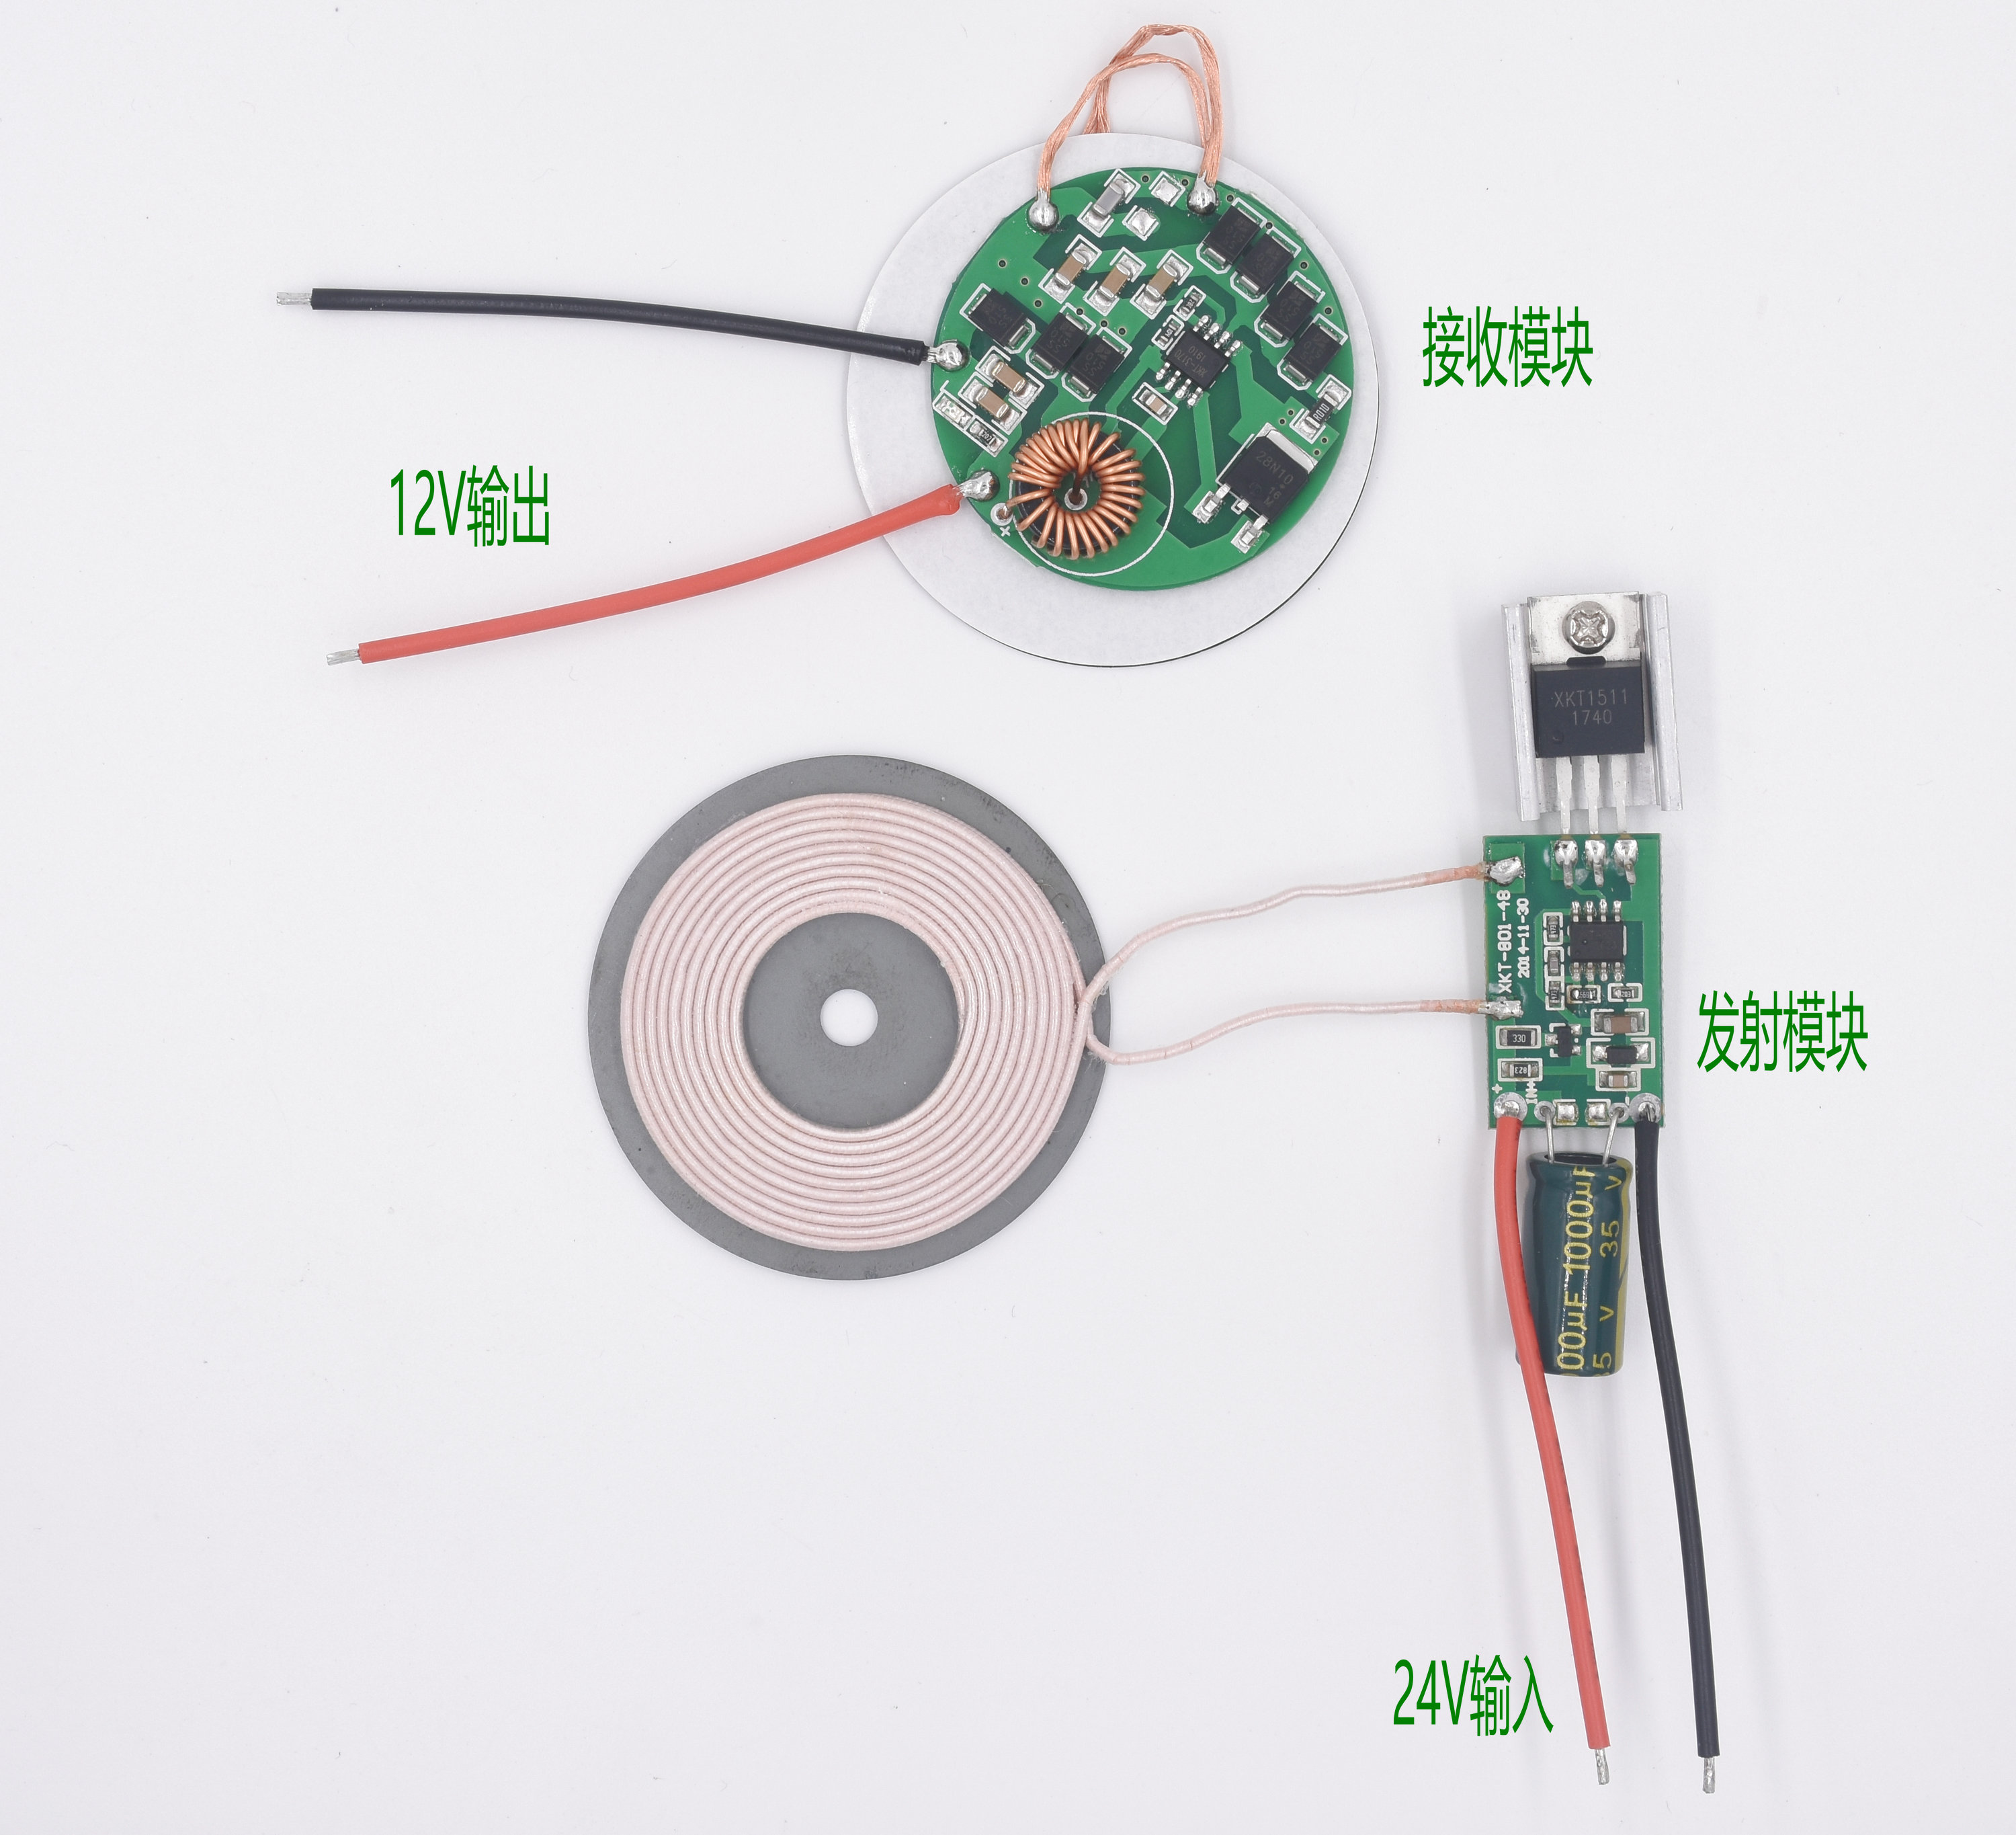 12V2A High Current Wireless Charging Wireless Power Supply Module With Magnetic Sheet For Circuit Scheme XKT801-49